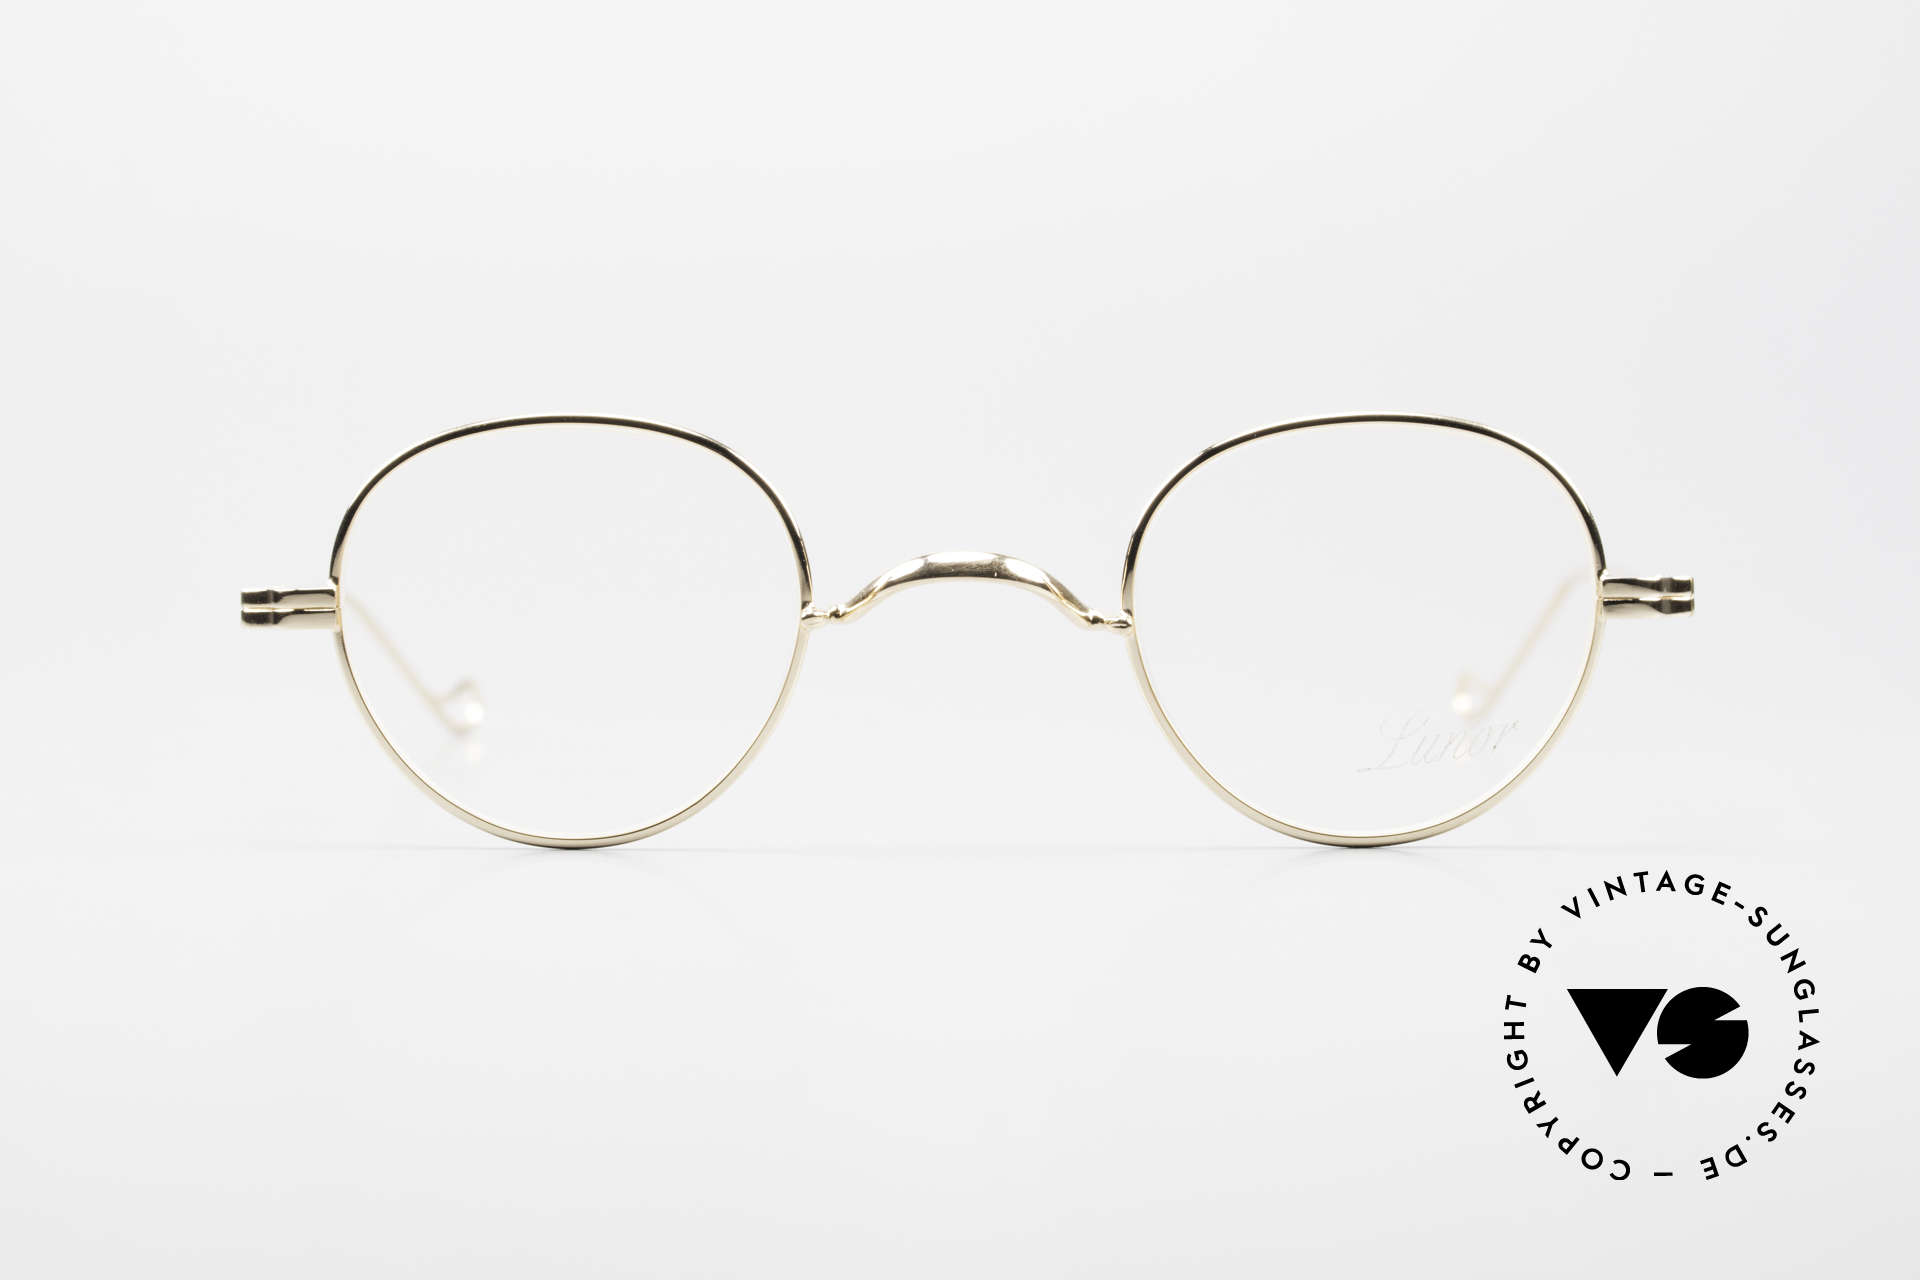 Lunor II 15 Old Panto Frame Gold Plated, full rimmed, GOLD-PLATED: tangible top-notch quality, Made for Men and Women